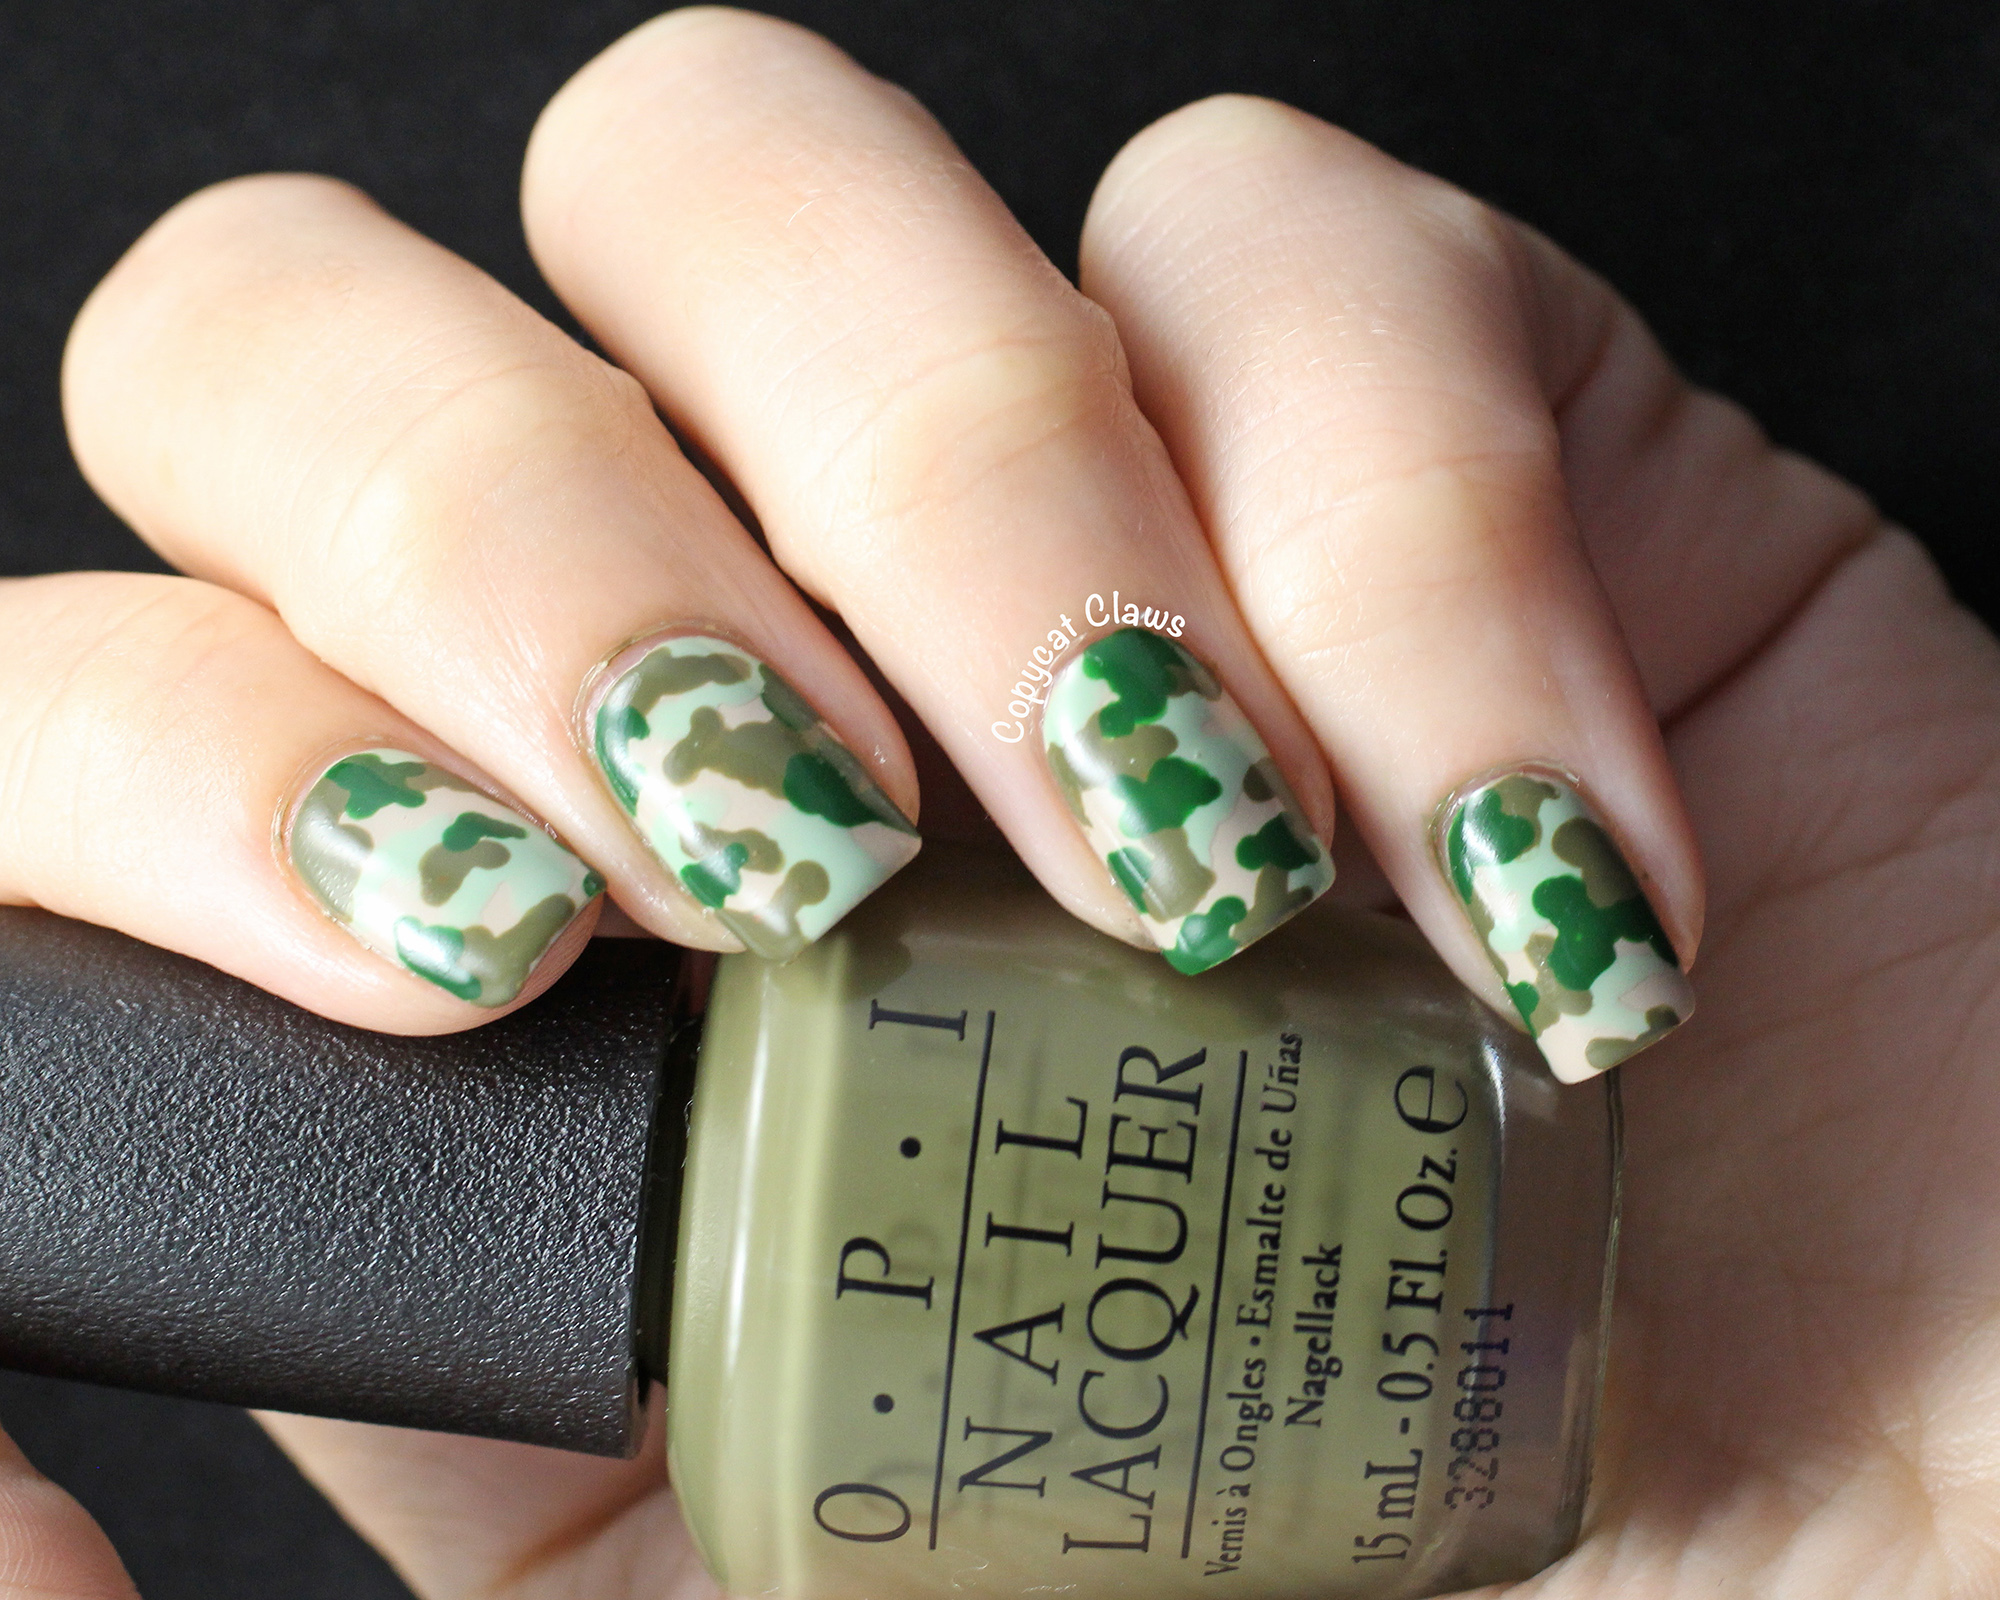 Copycat Claws Camo Nail Art Opi Did You Ear About Van Gogh